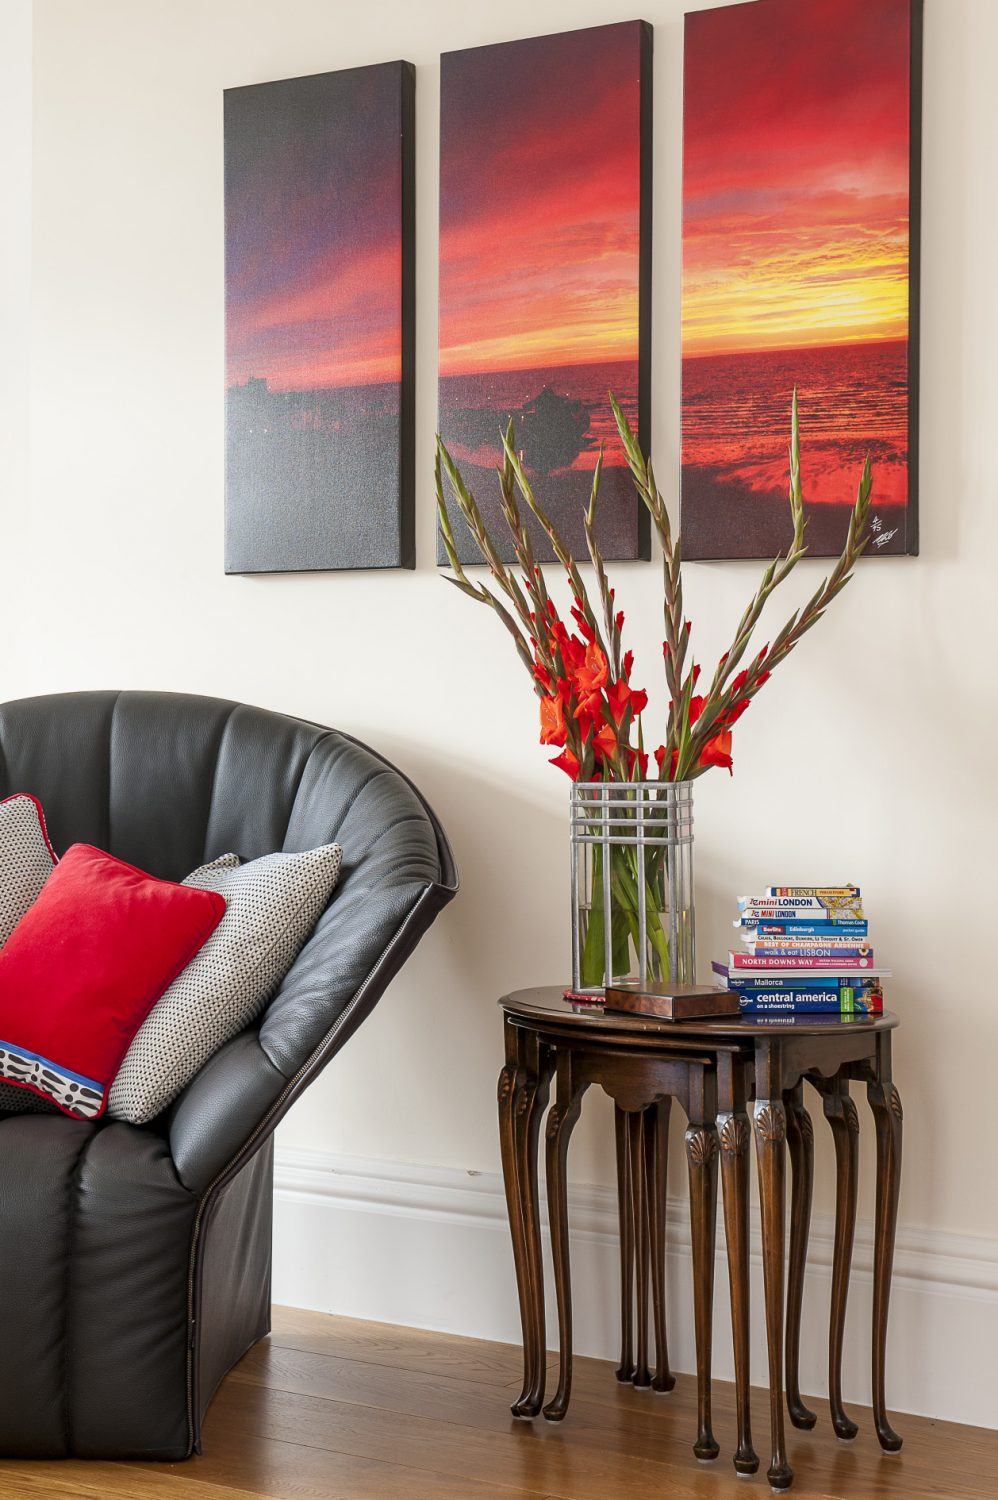 Accents of strong colour work well in the large, light filled rooms. Here, the vibrant red of a photographic triptych of a coastal sunset at Folkestone is echoed in the soft furnishings and crimson gladioli